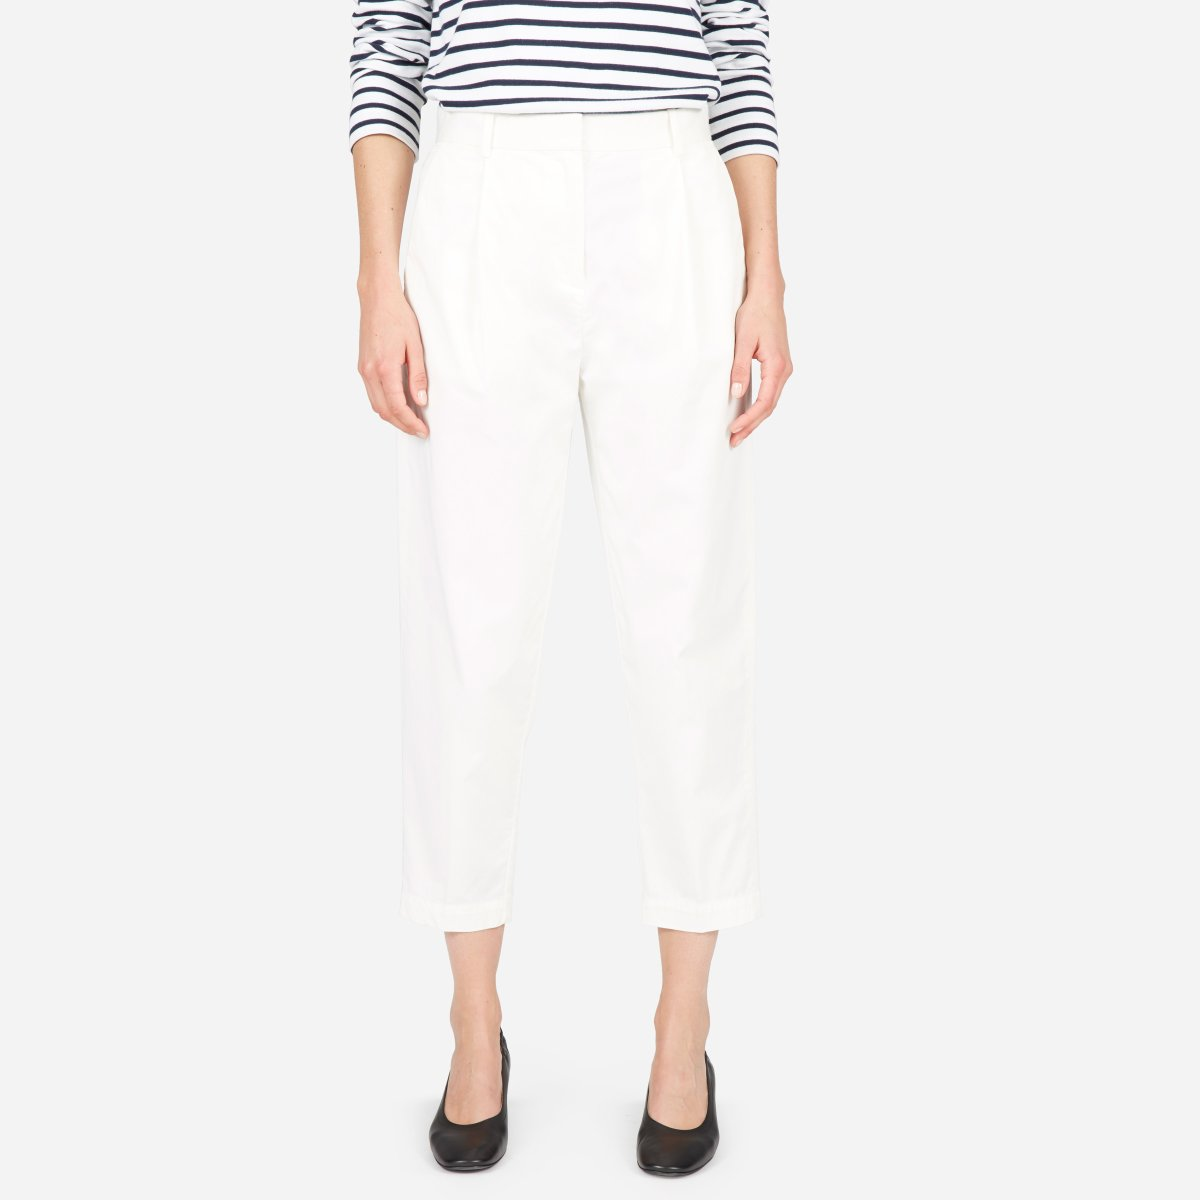 Everlane Choose What You Pay / Slouchy Chino Pant - Sunshine Style, A Florida Based Fashion Blog